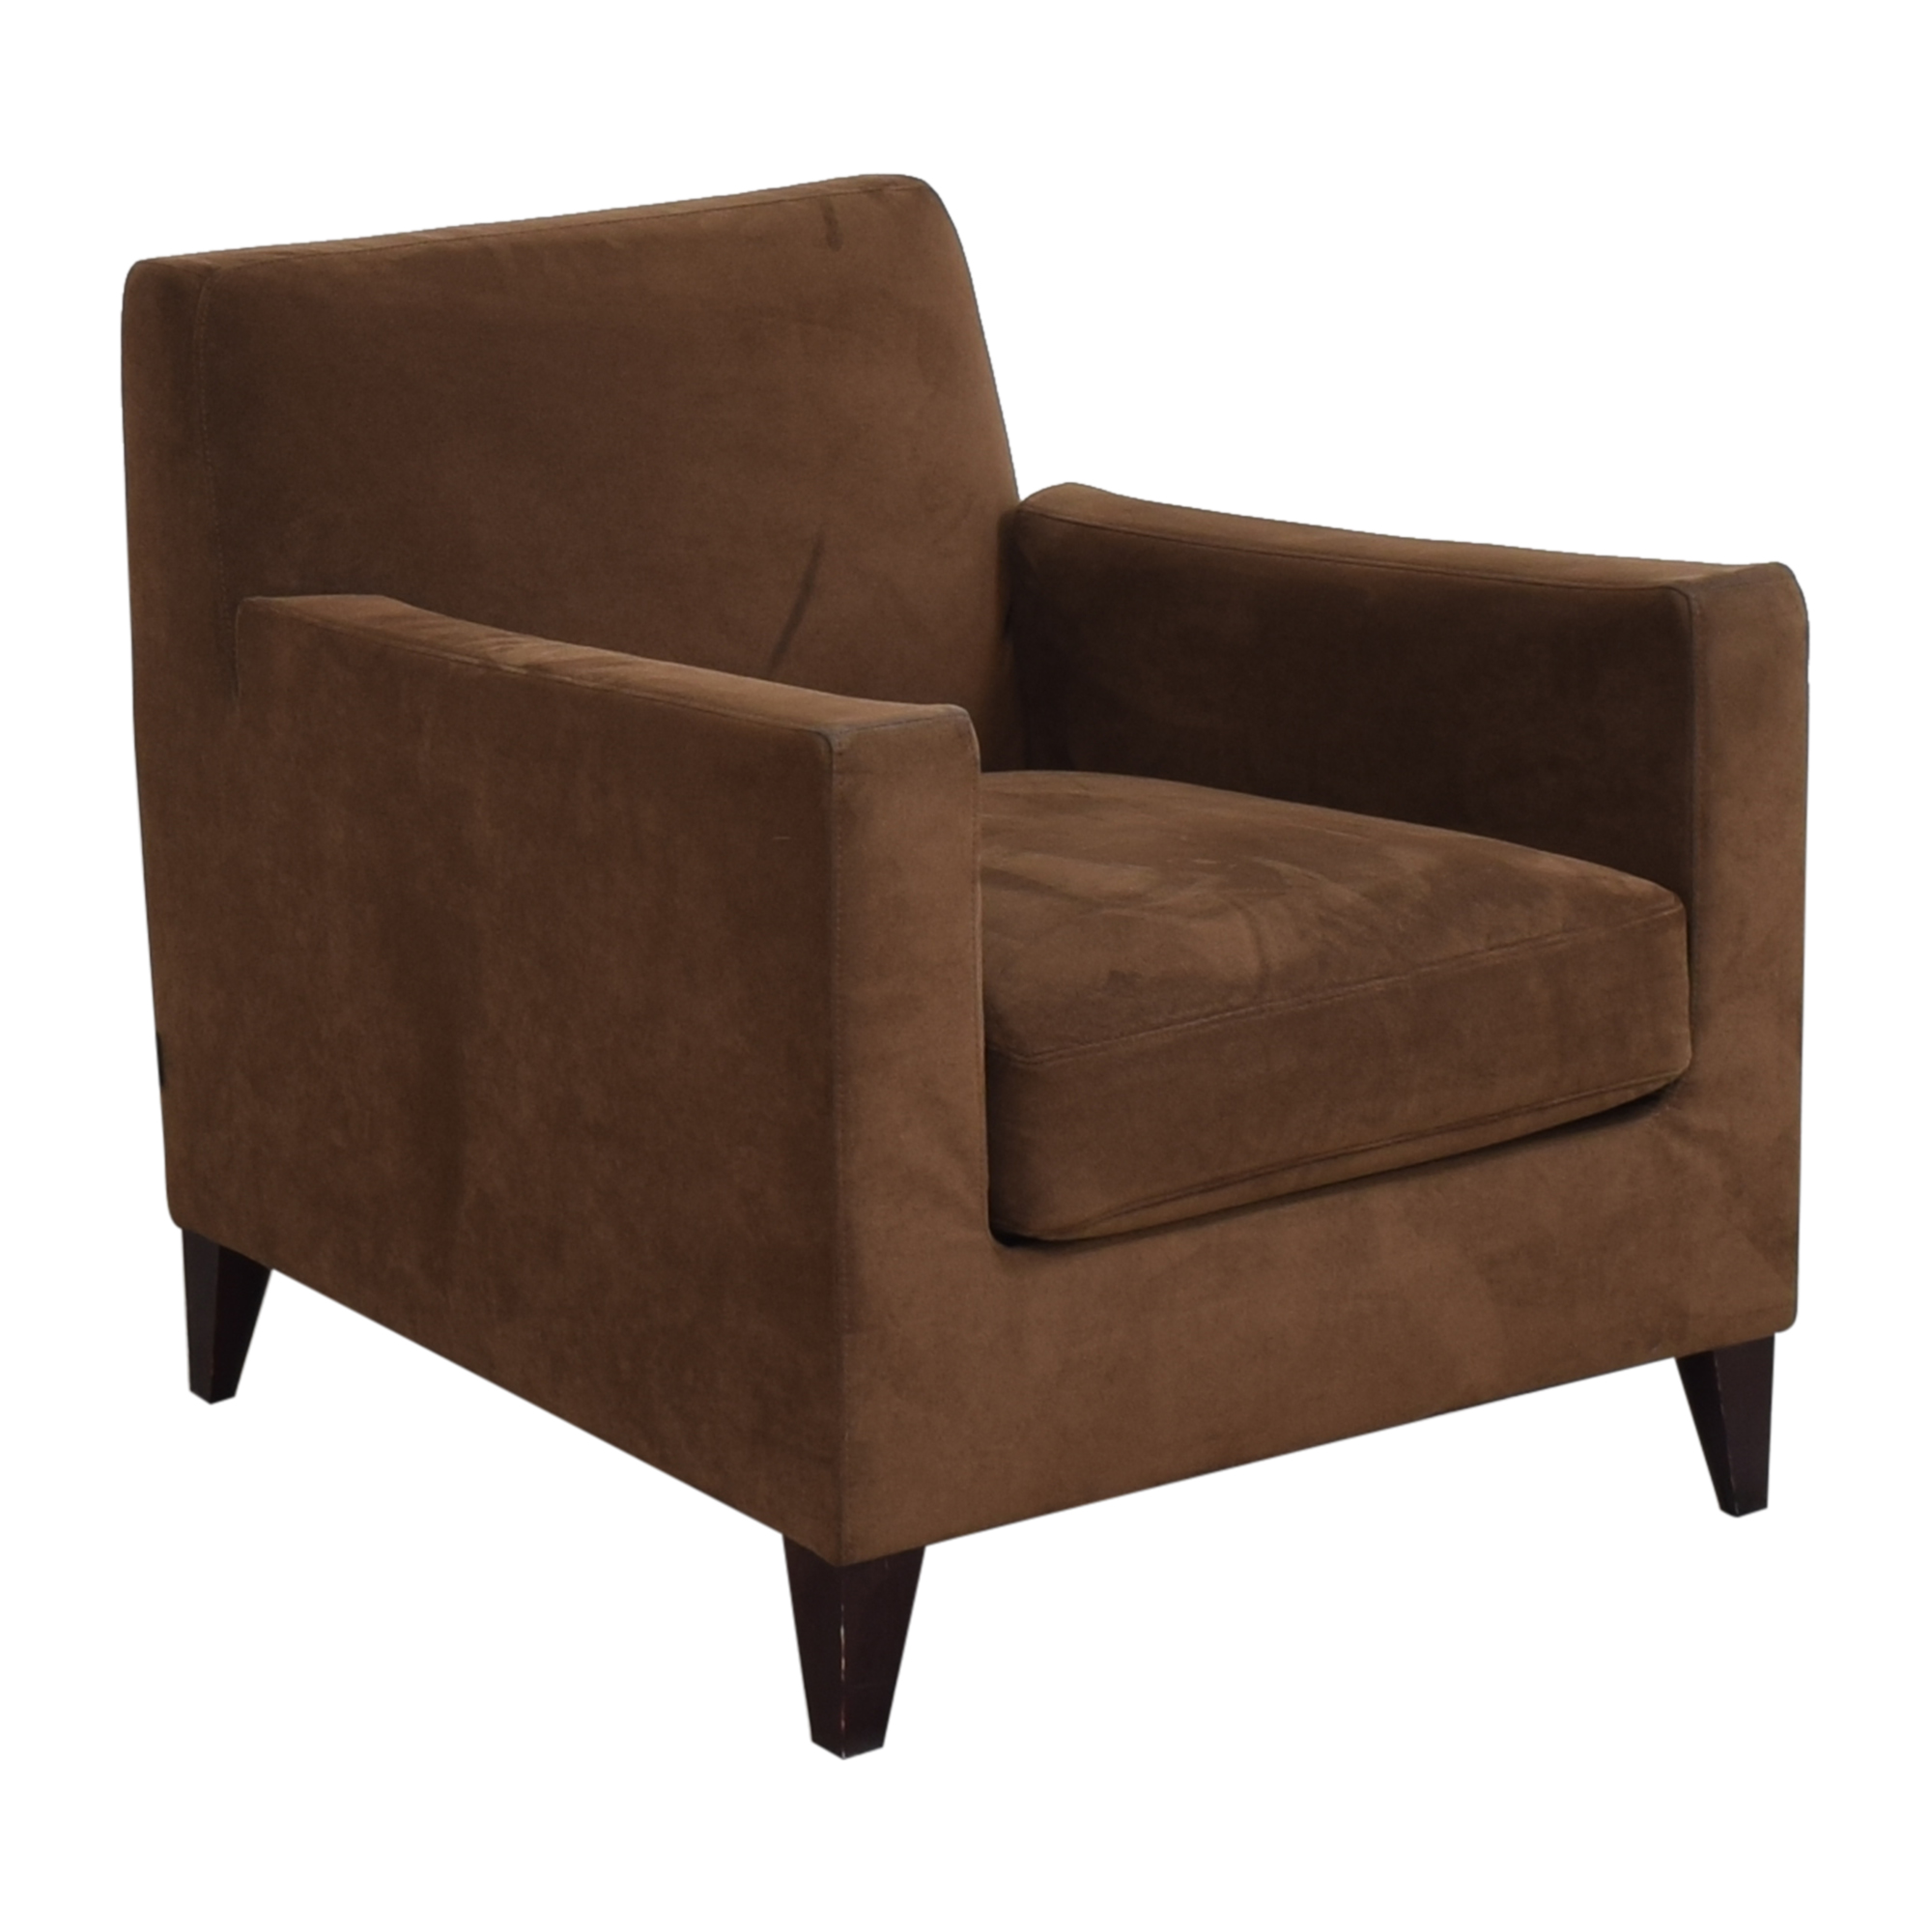 Ligne Roset Ligne Roset Modern Accent Chair price